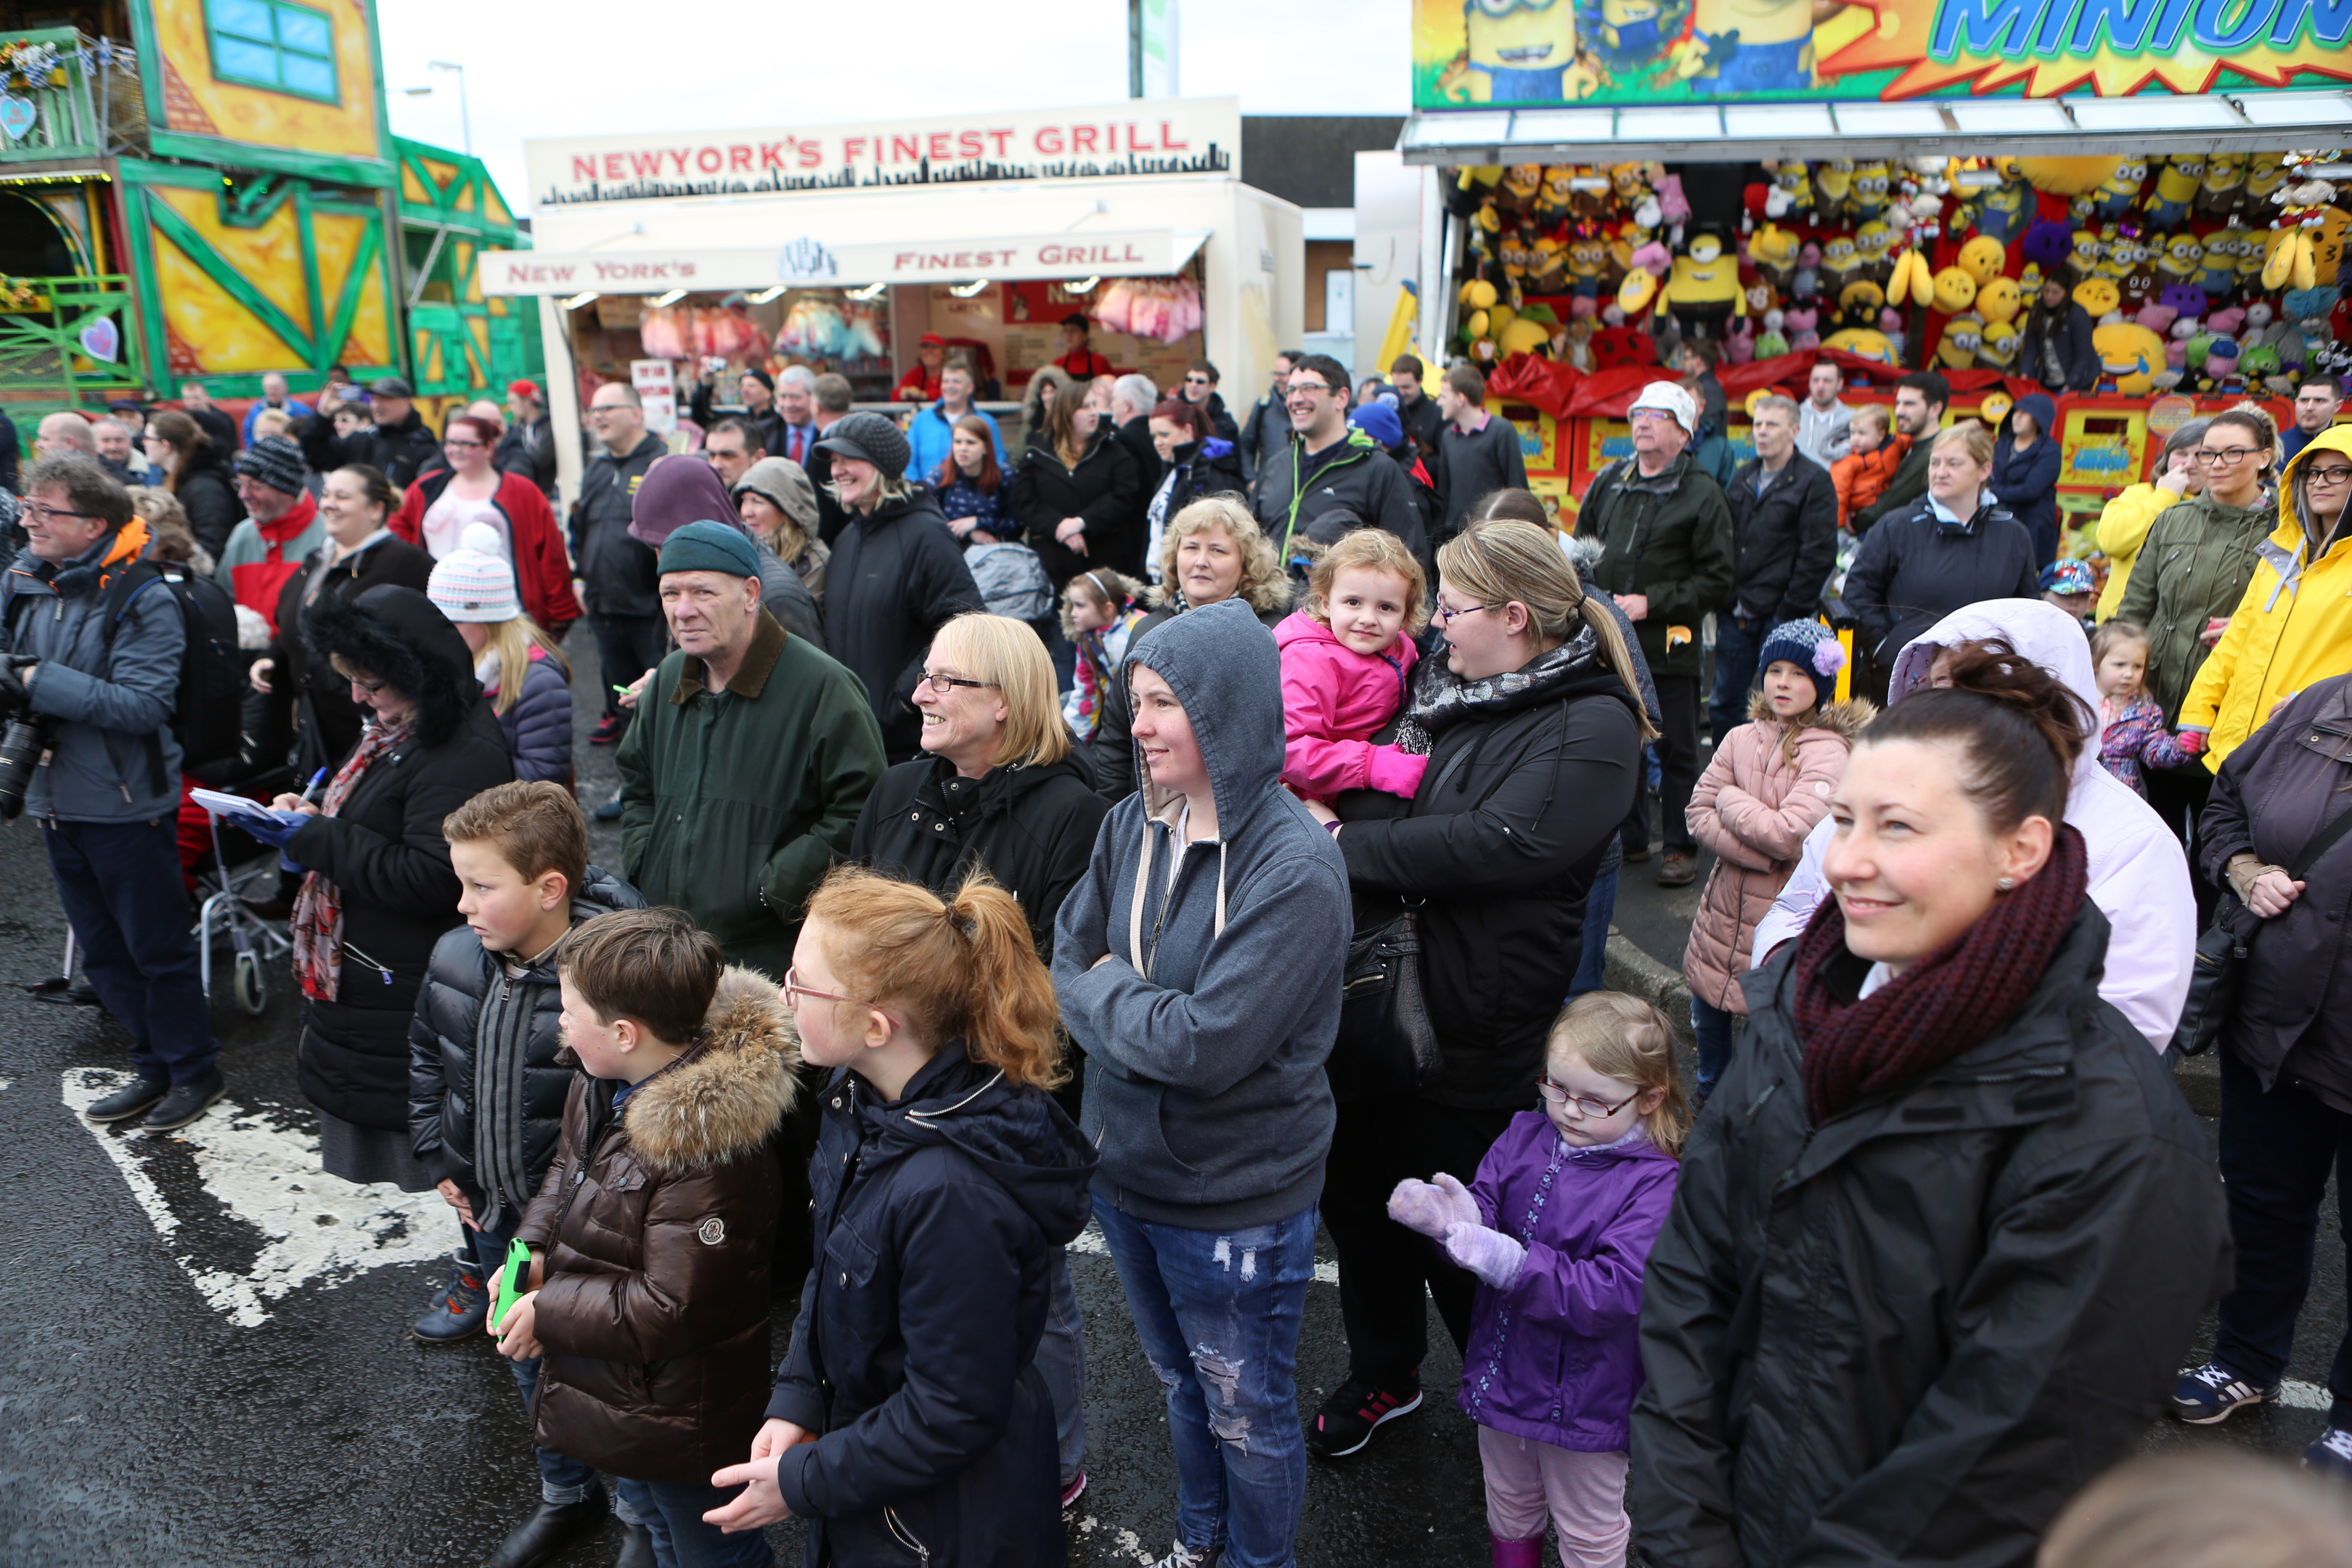 Not everyone goes to the Links Market for a fun family day out.